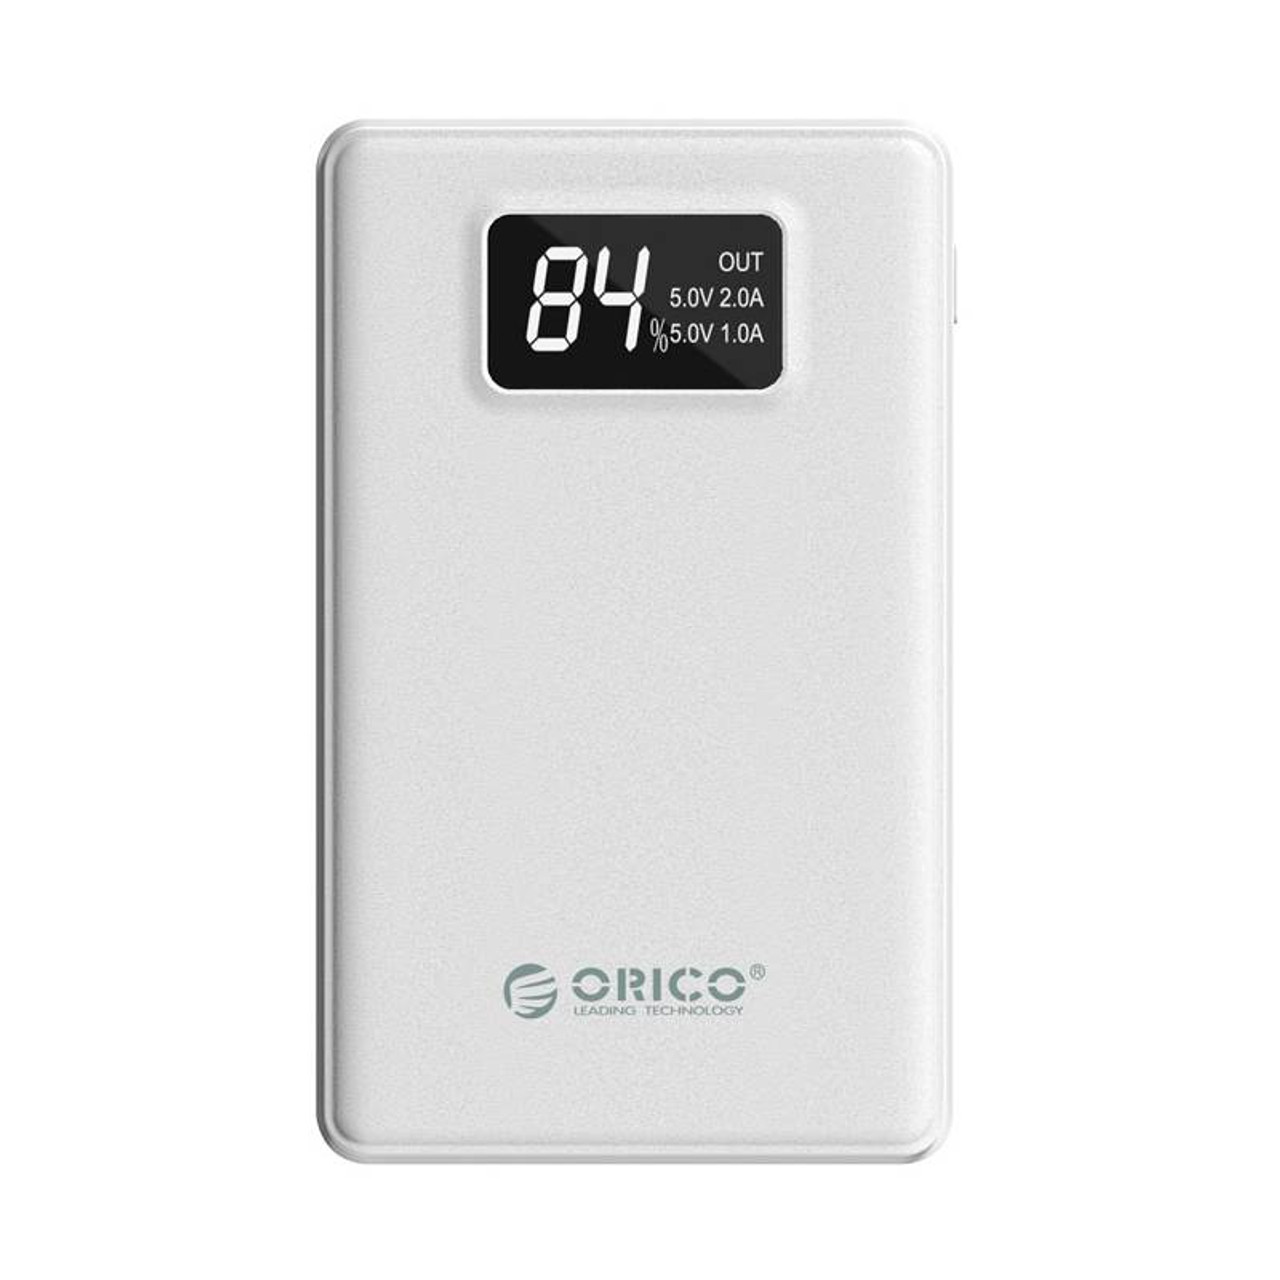 Image for Orico 8000mAh Smart Power Bank with Display Screen - White CX Computer Superstore